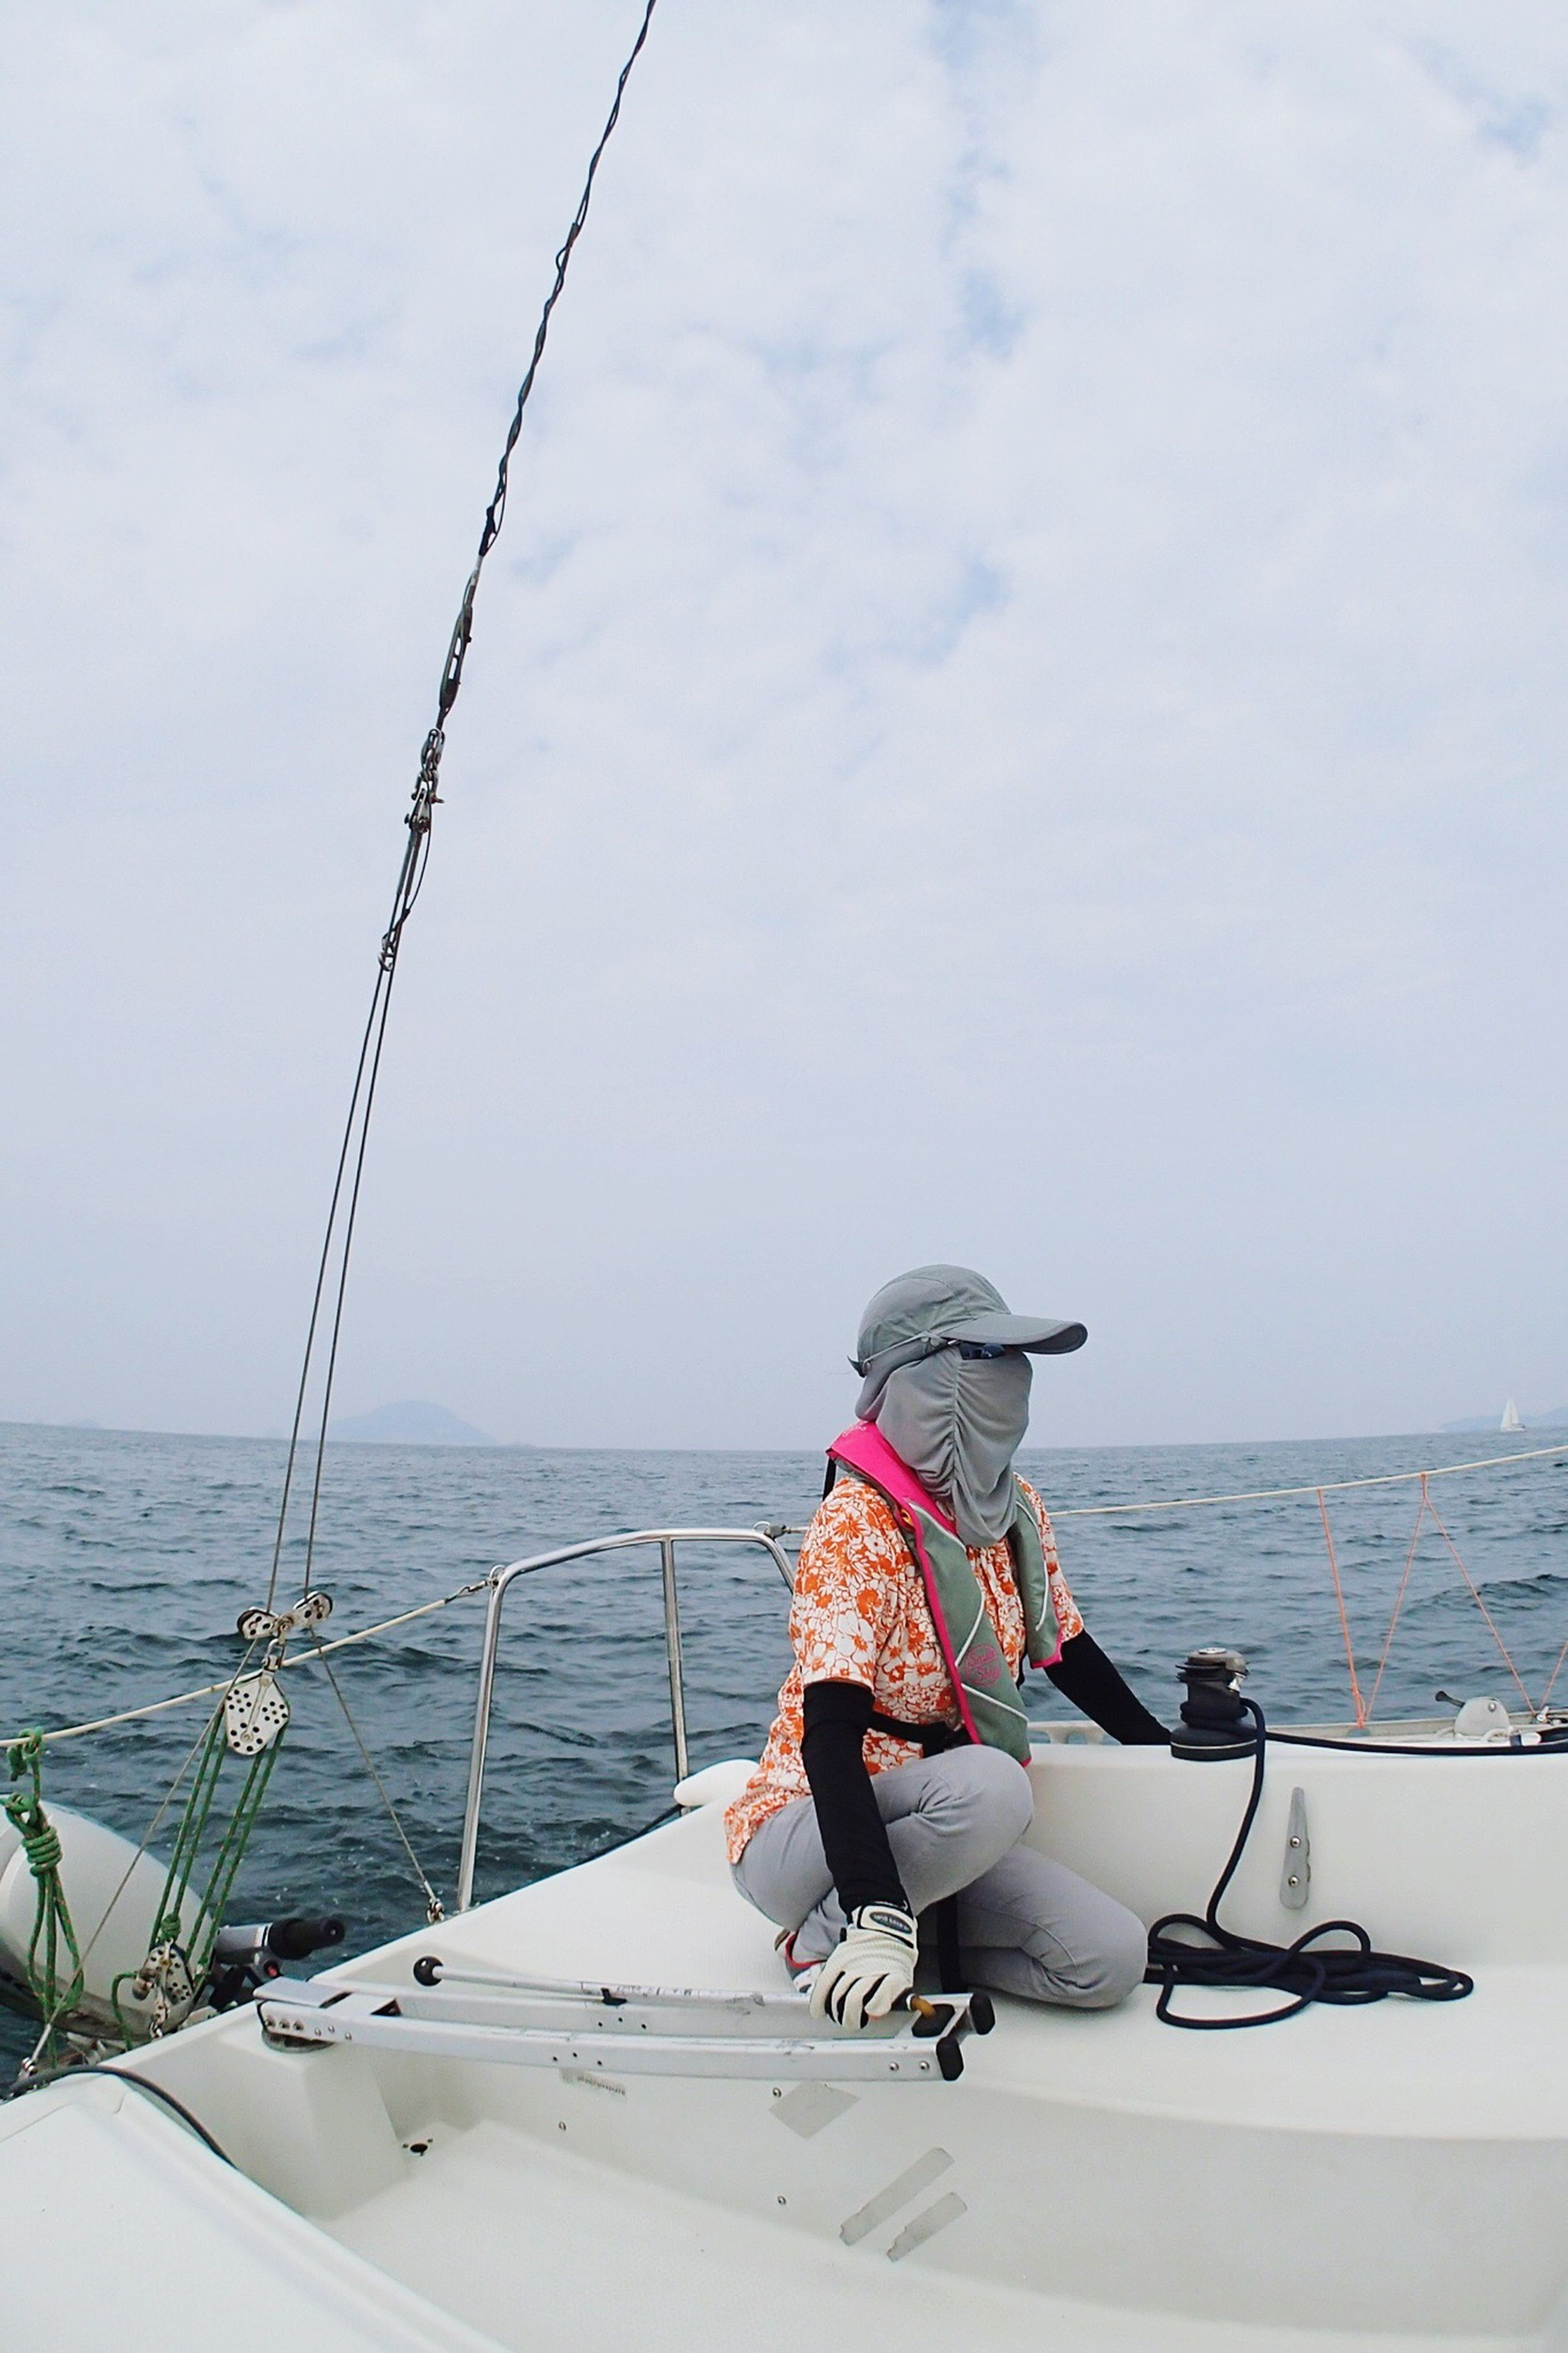 sea, water, transportation, horizon over water, nautical vessel, sitting, mode of transport, men, sky, casual clothing, day, remote, outdoors, solitude, scenics, tranquil scene, hobbies, nature, non-urban scene, vacations, tranquility